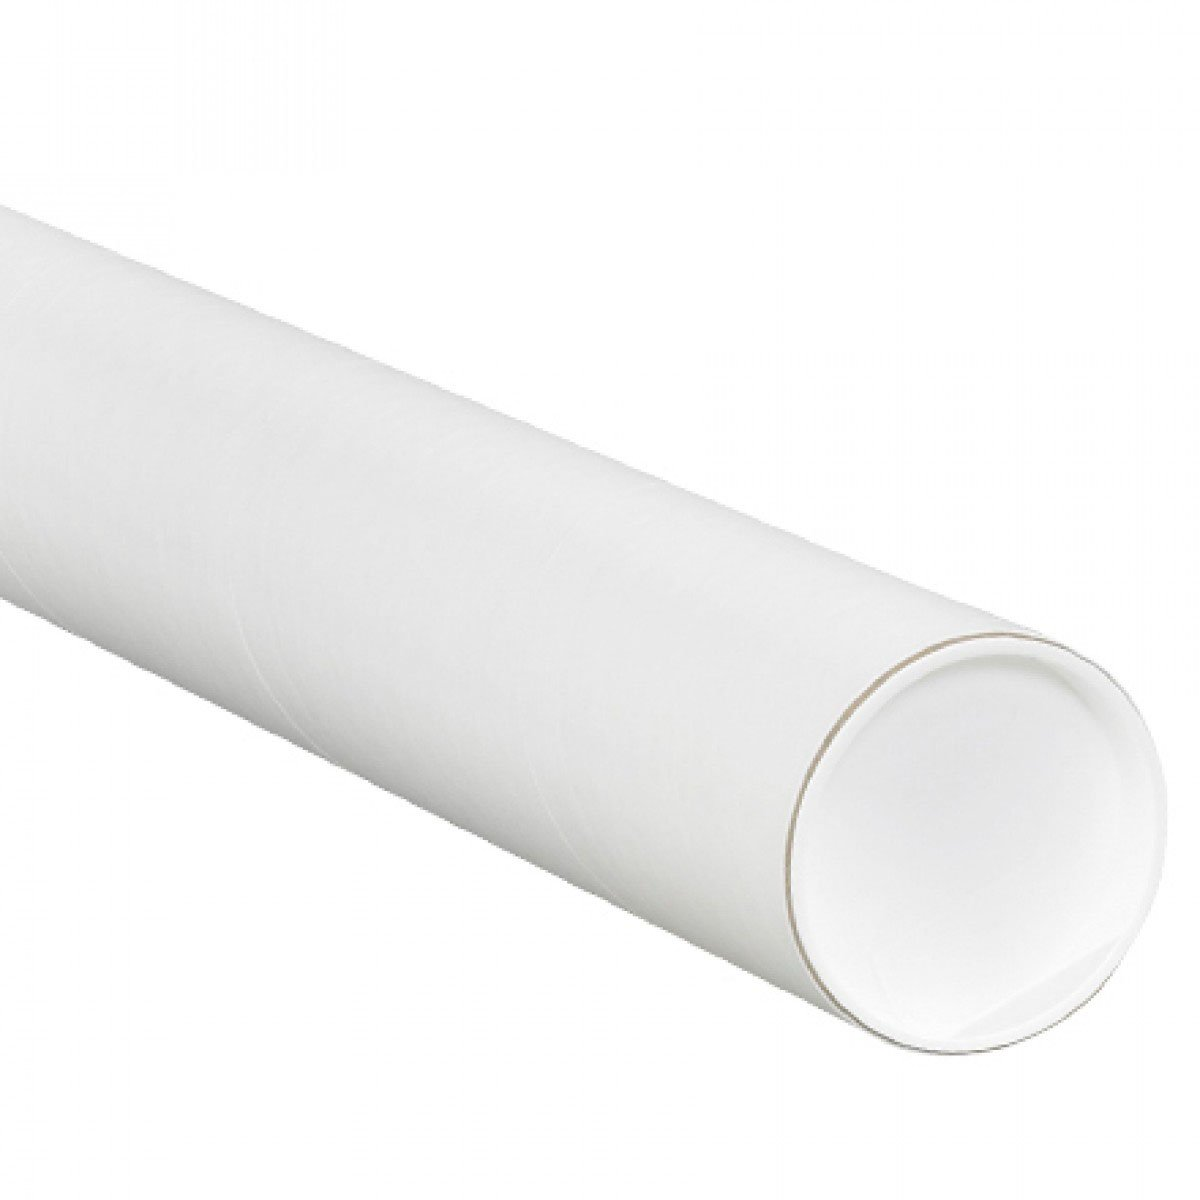 RetailSource P4030Wx10 4 x 30 White Mailing tubes with Caps Pack of 10